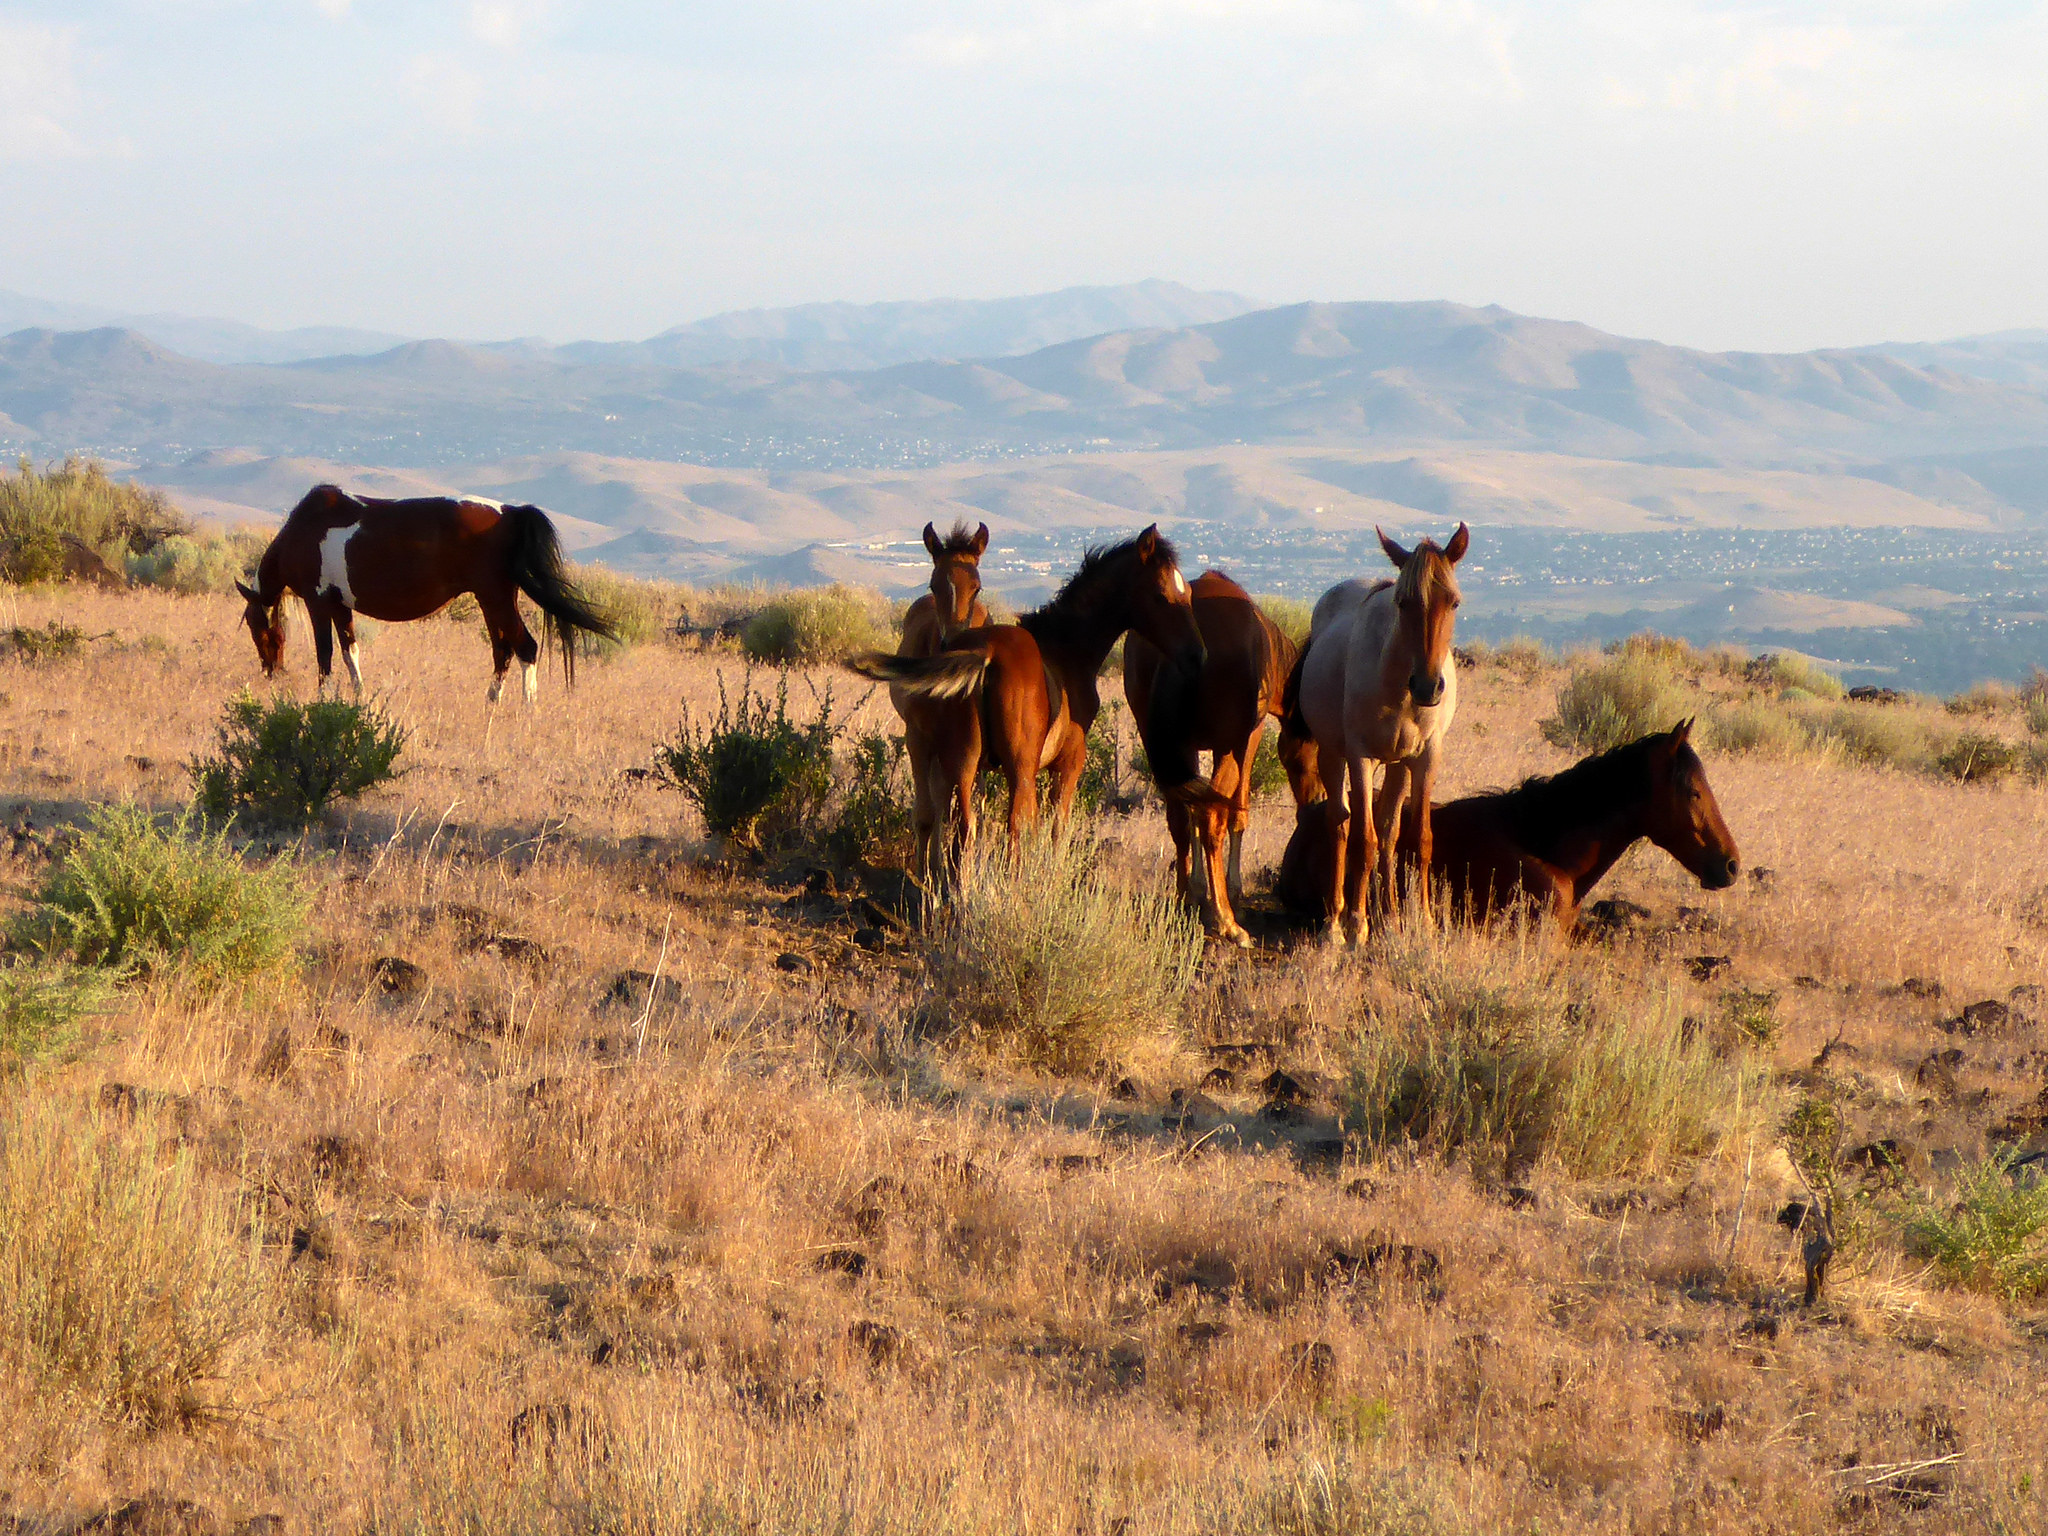 The Magical Place In Nevada Where You Can View A Wild Horses Herd I Wild horses in the united states